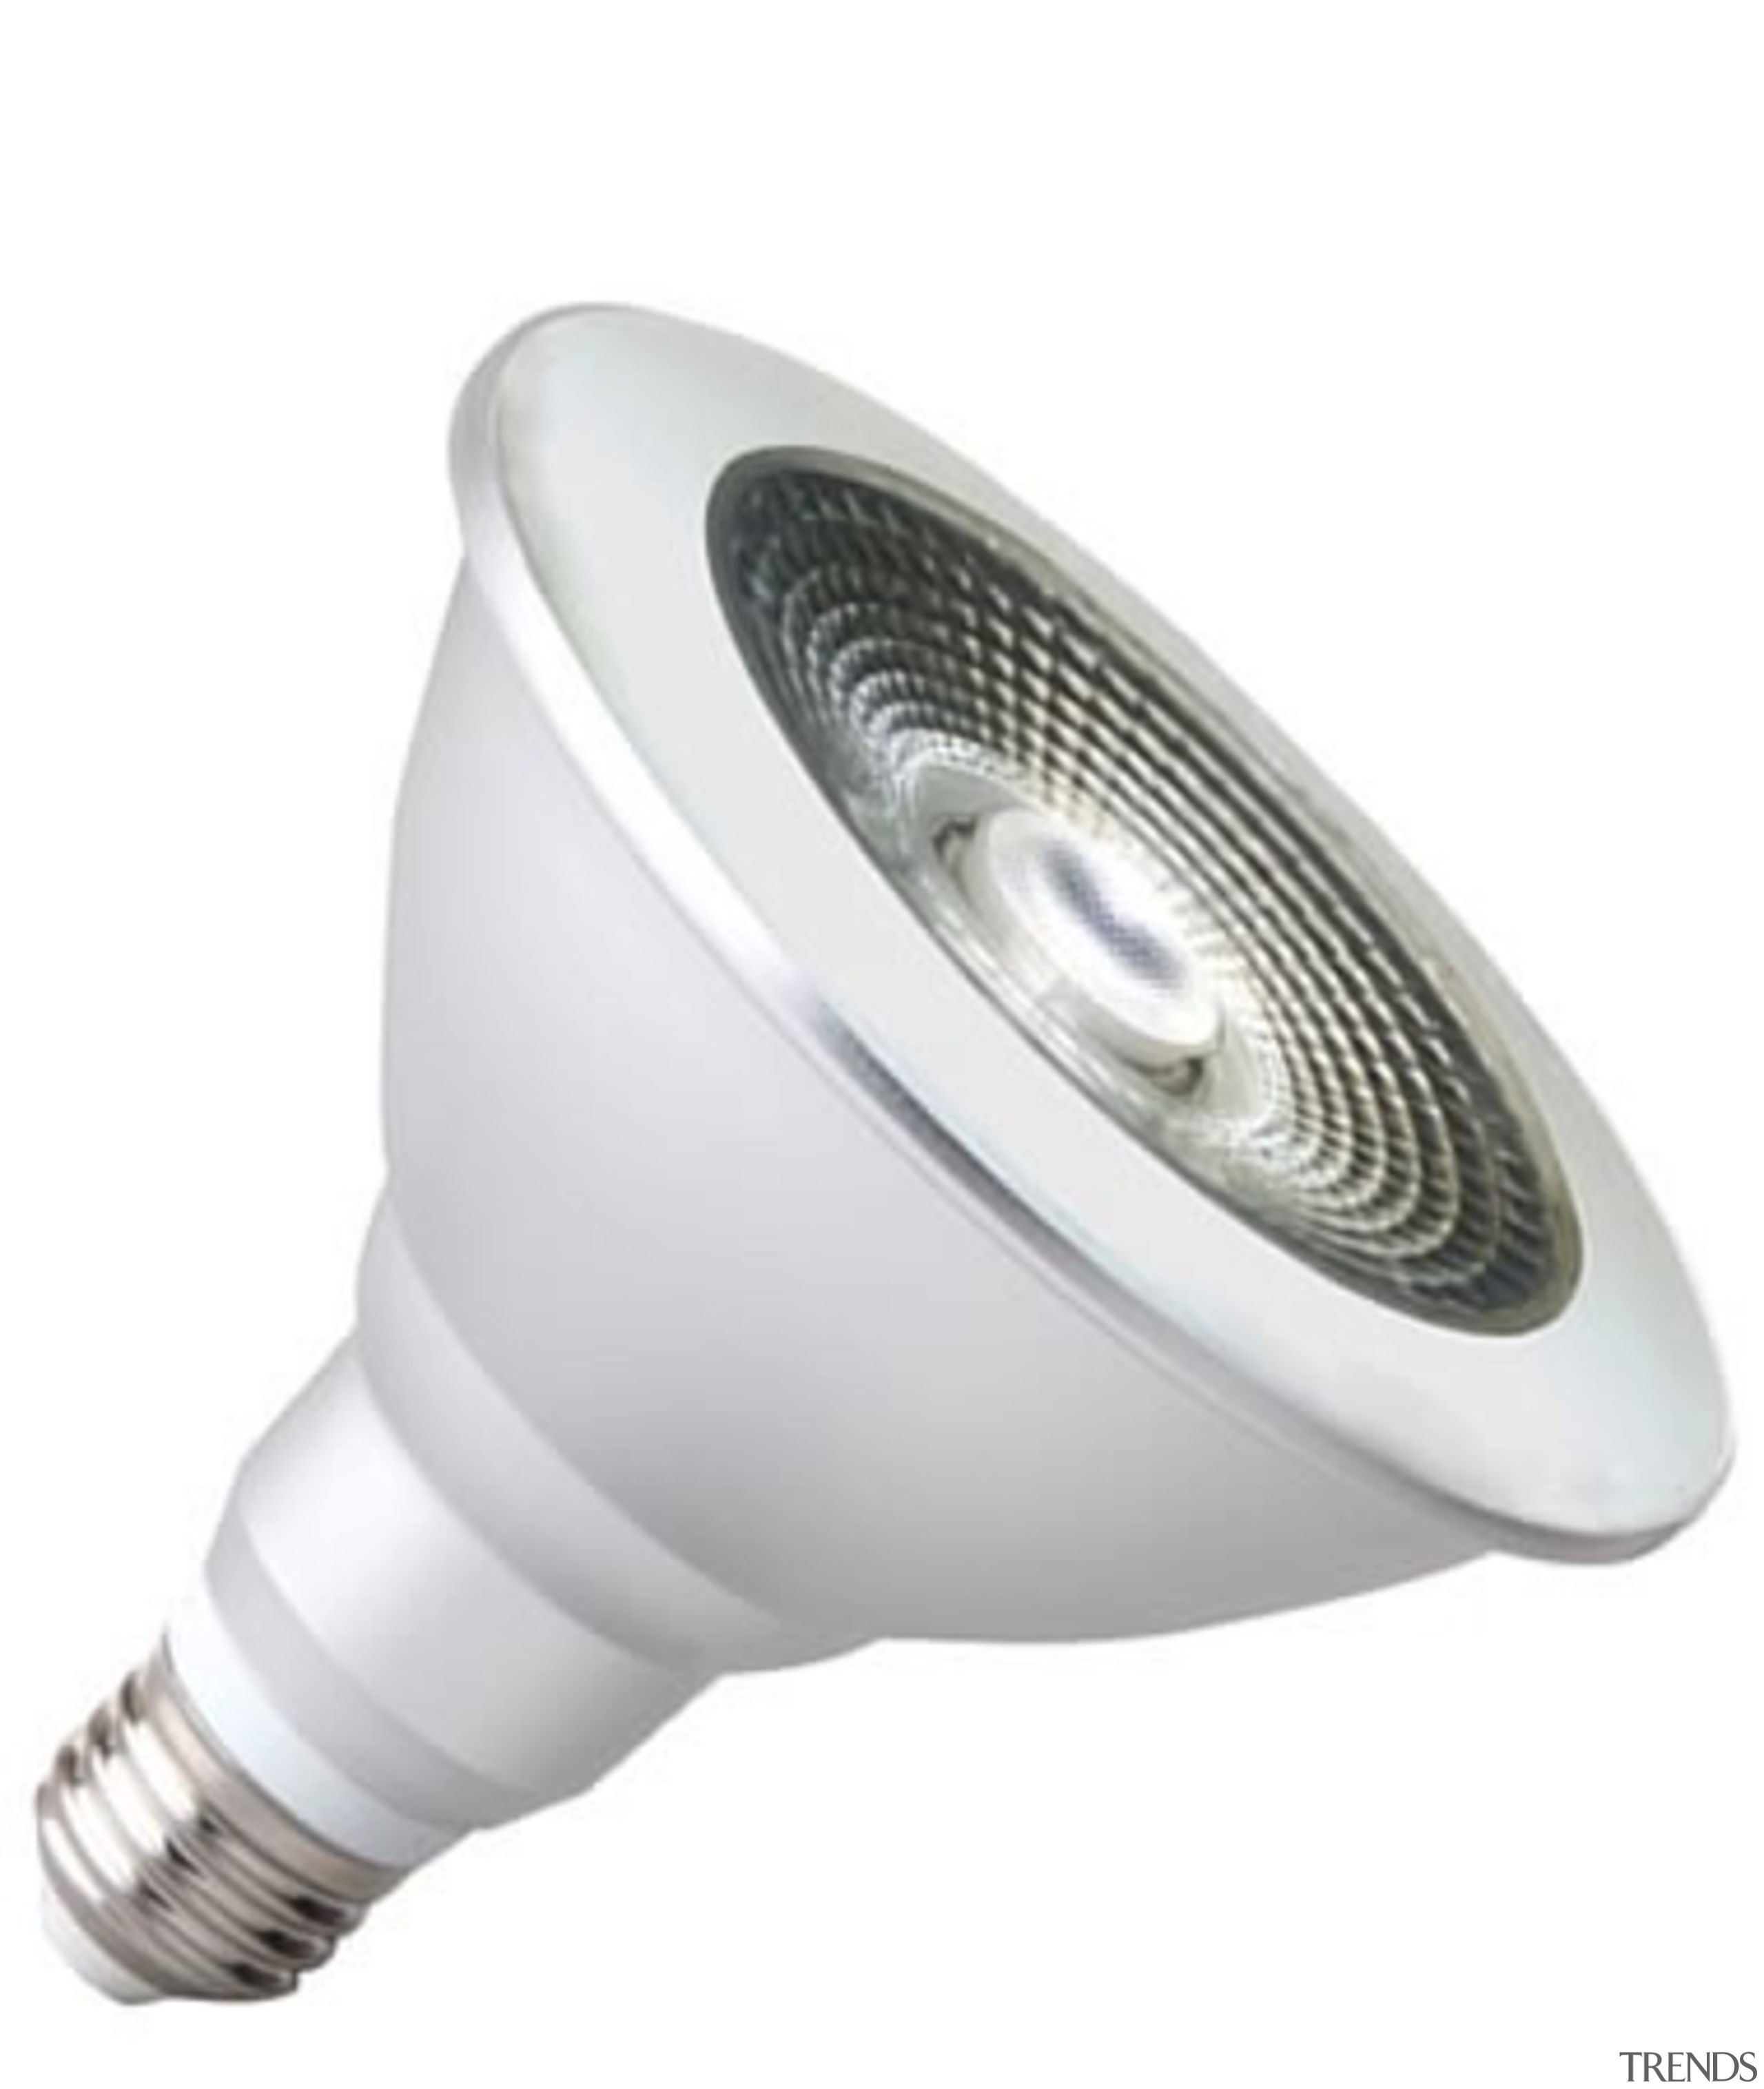 Features19W1550lmEfficacy: 84.4 lm/WCRI > Ra 80IP6528º beam angle30,000 lighting, product, product design, white